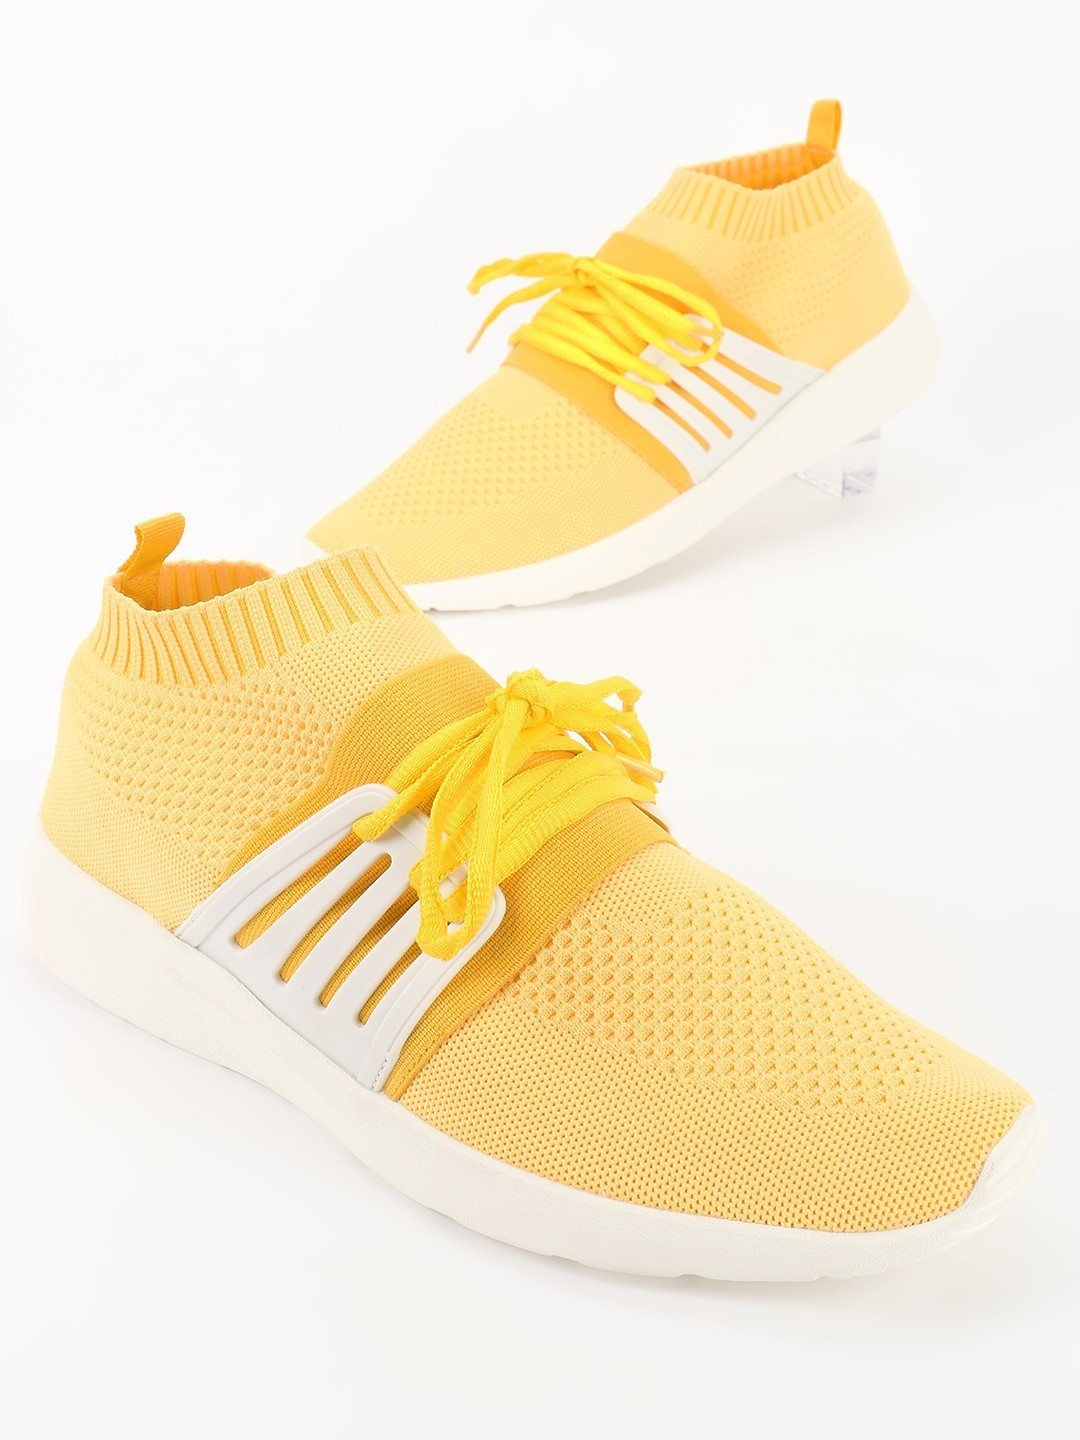 Kindred Yellow Knitted Mesh Sockliner Shoes 1